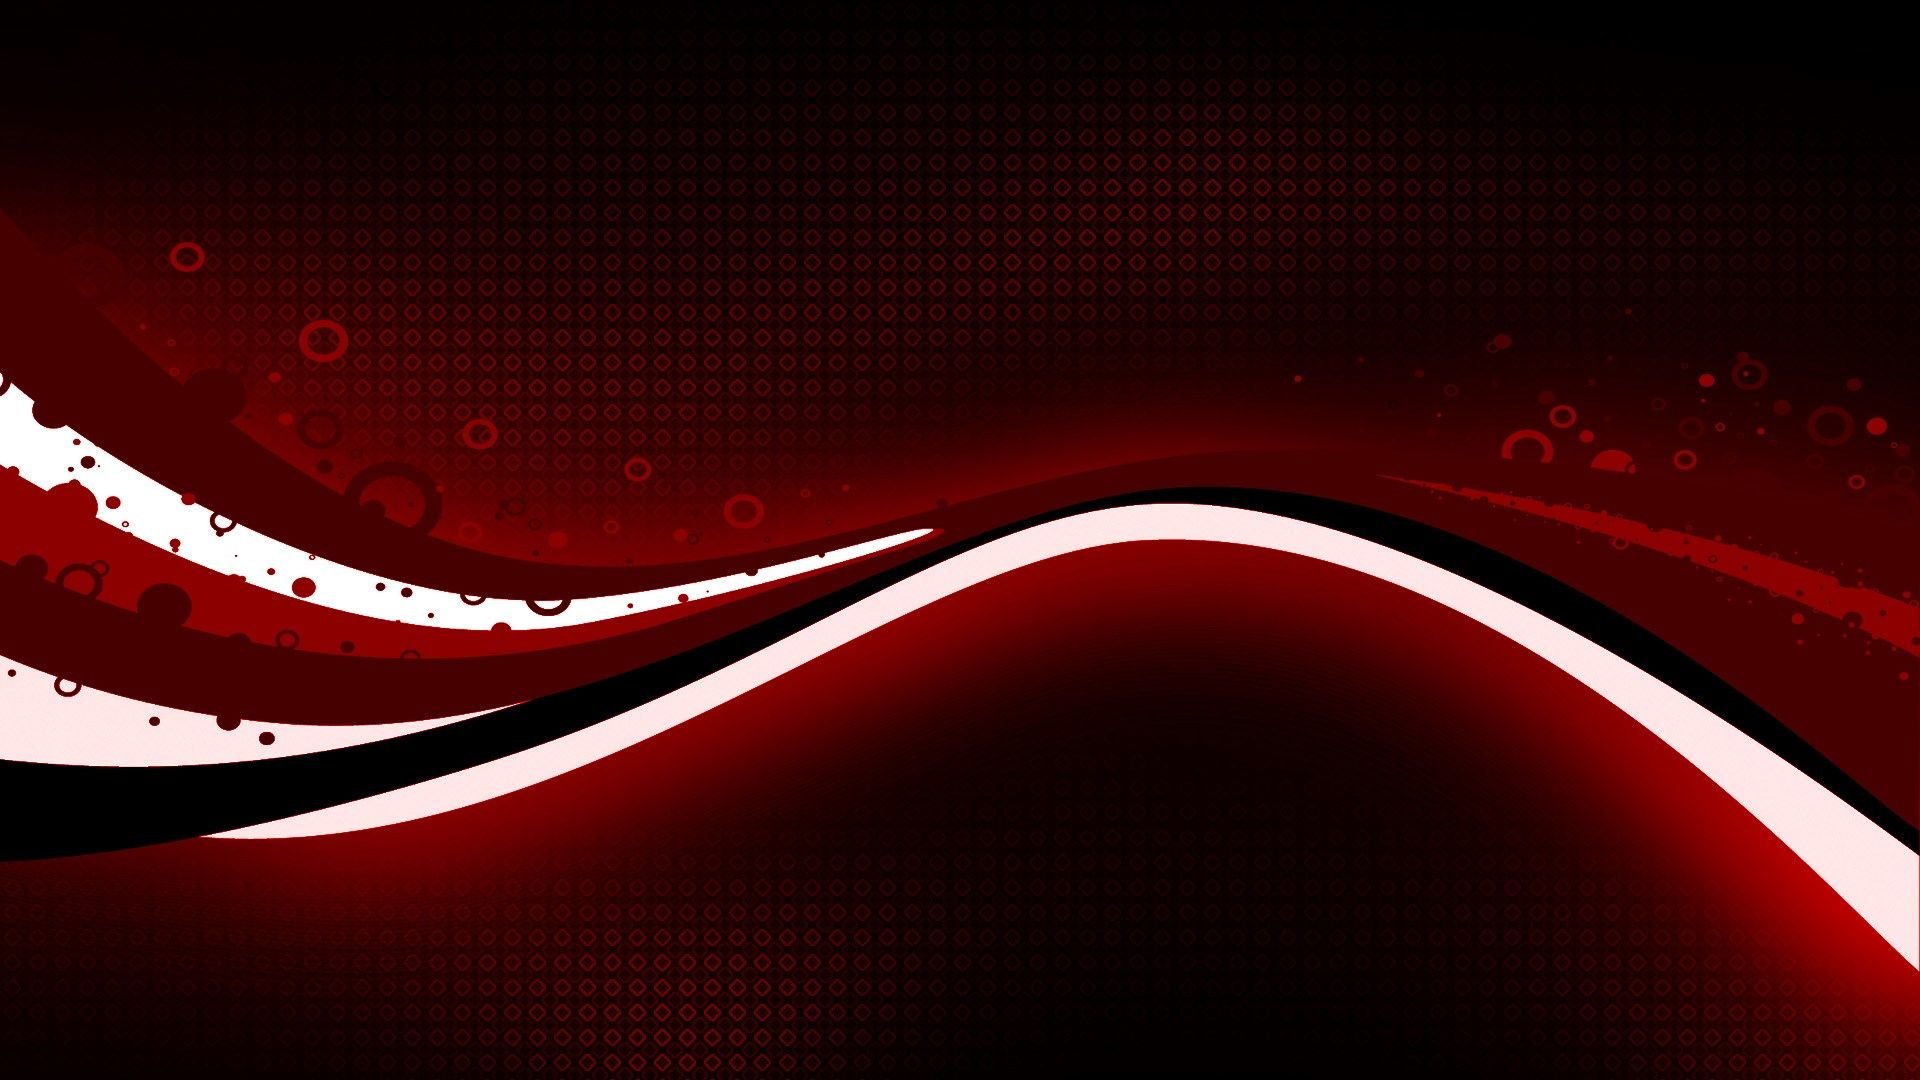 Cute Red Wallpaper Black White Image Diamond Picture